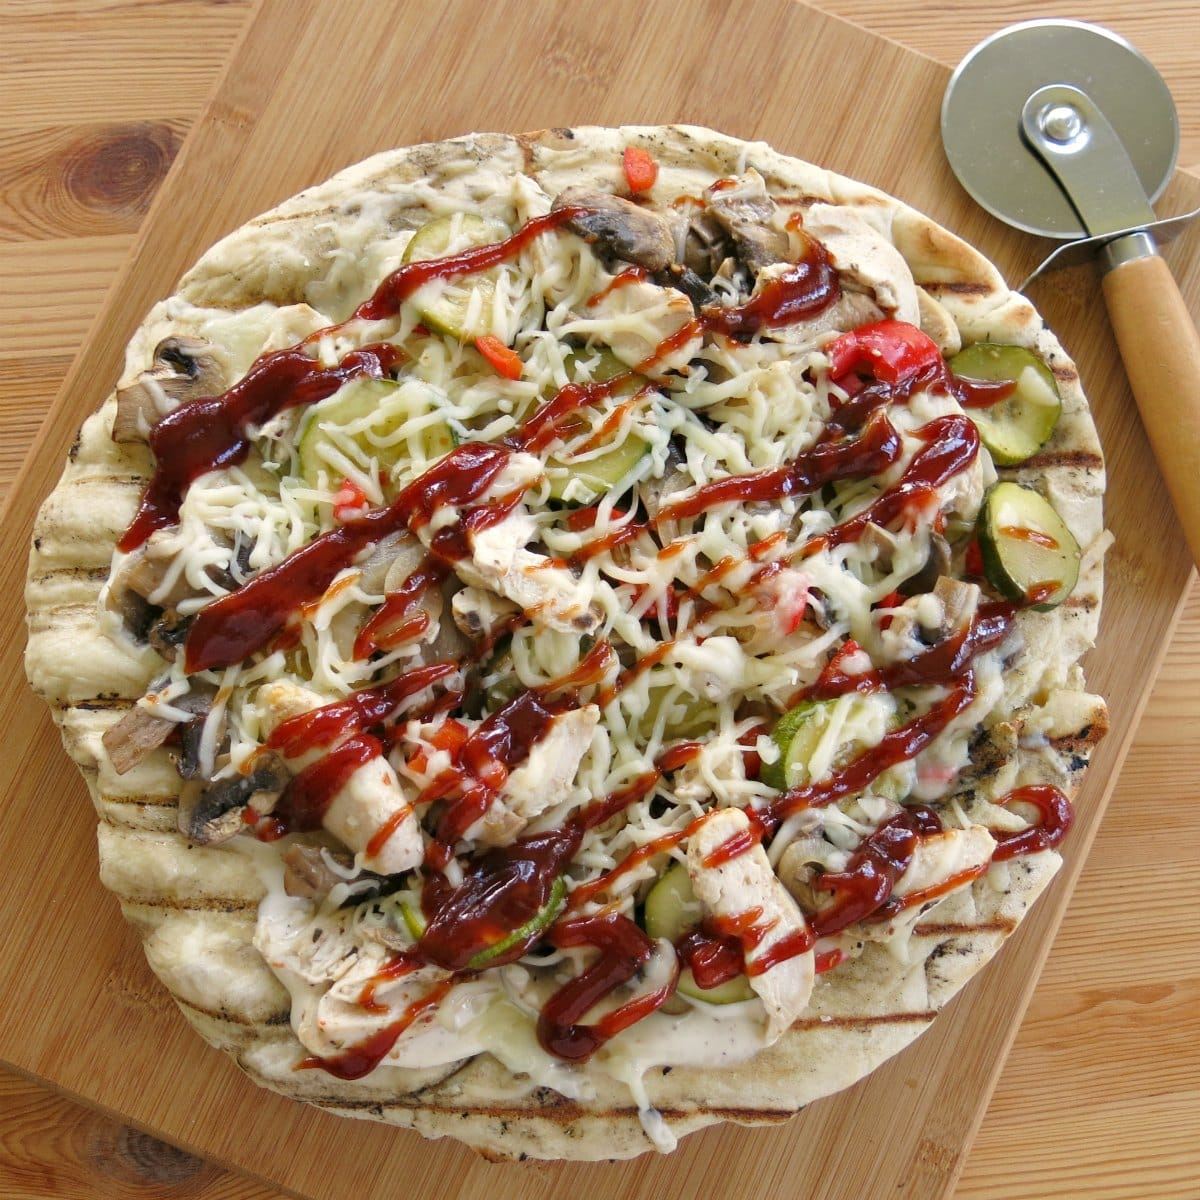 Finished BBQ Chicken Pizza on cutting board with a pizza cutter.